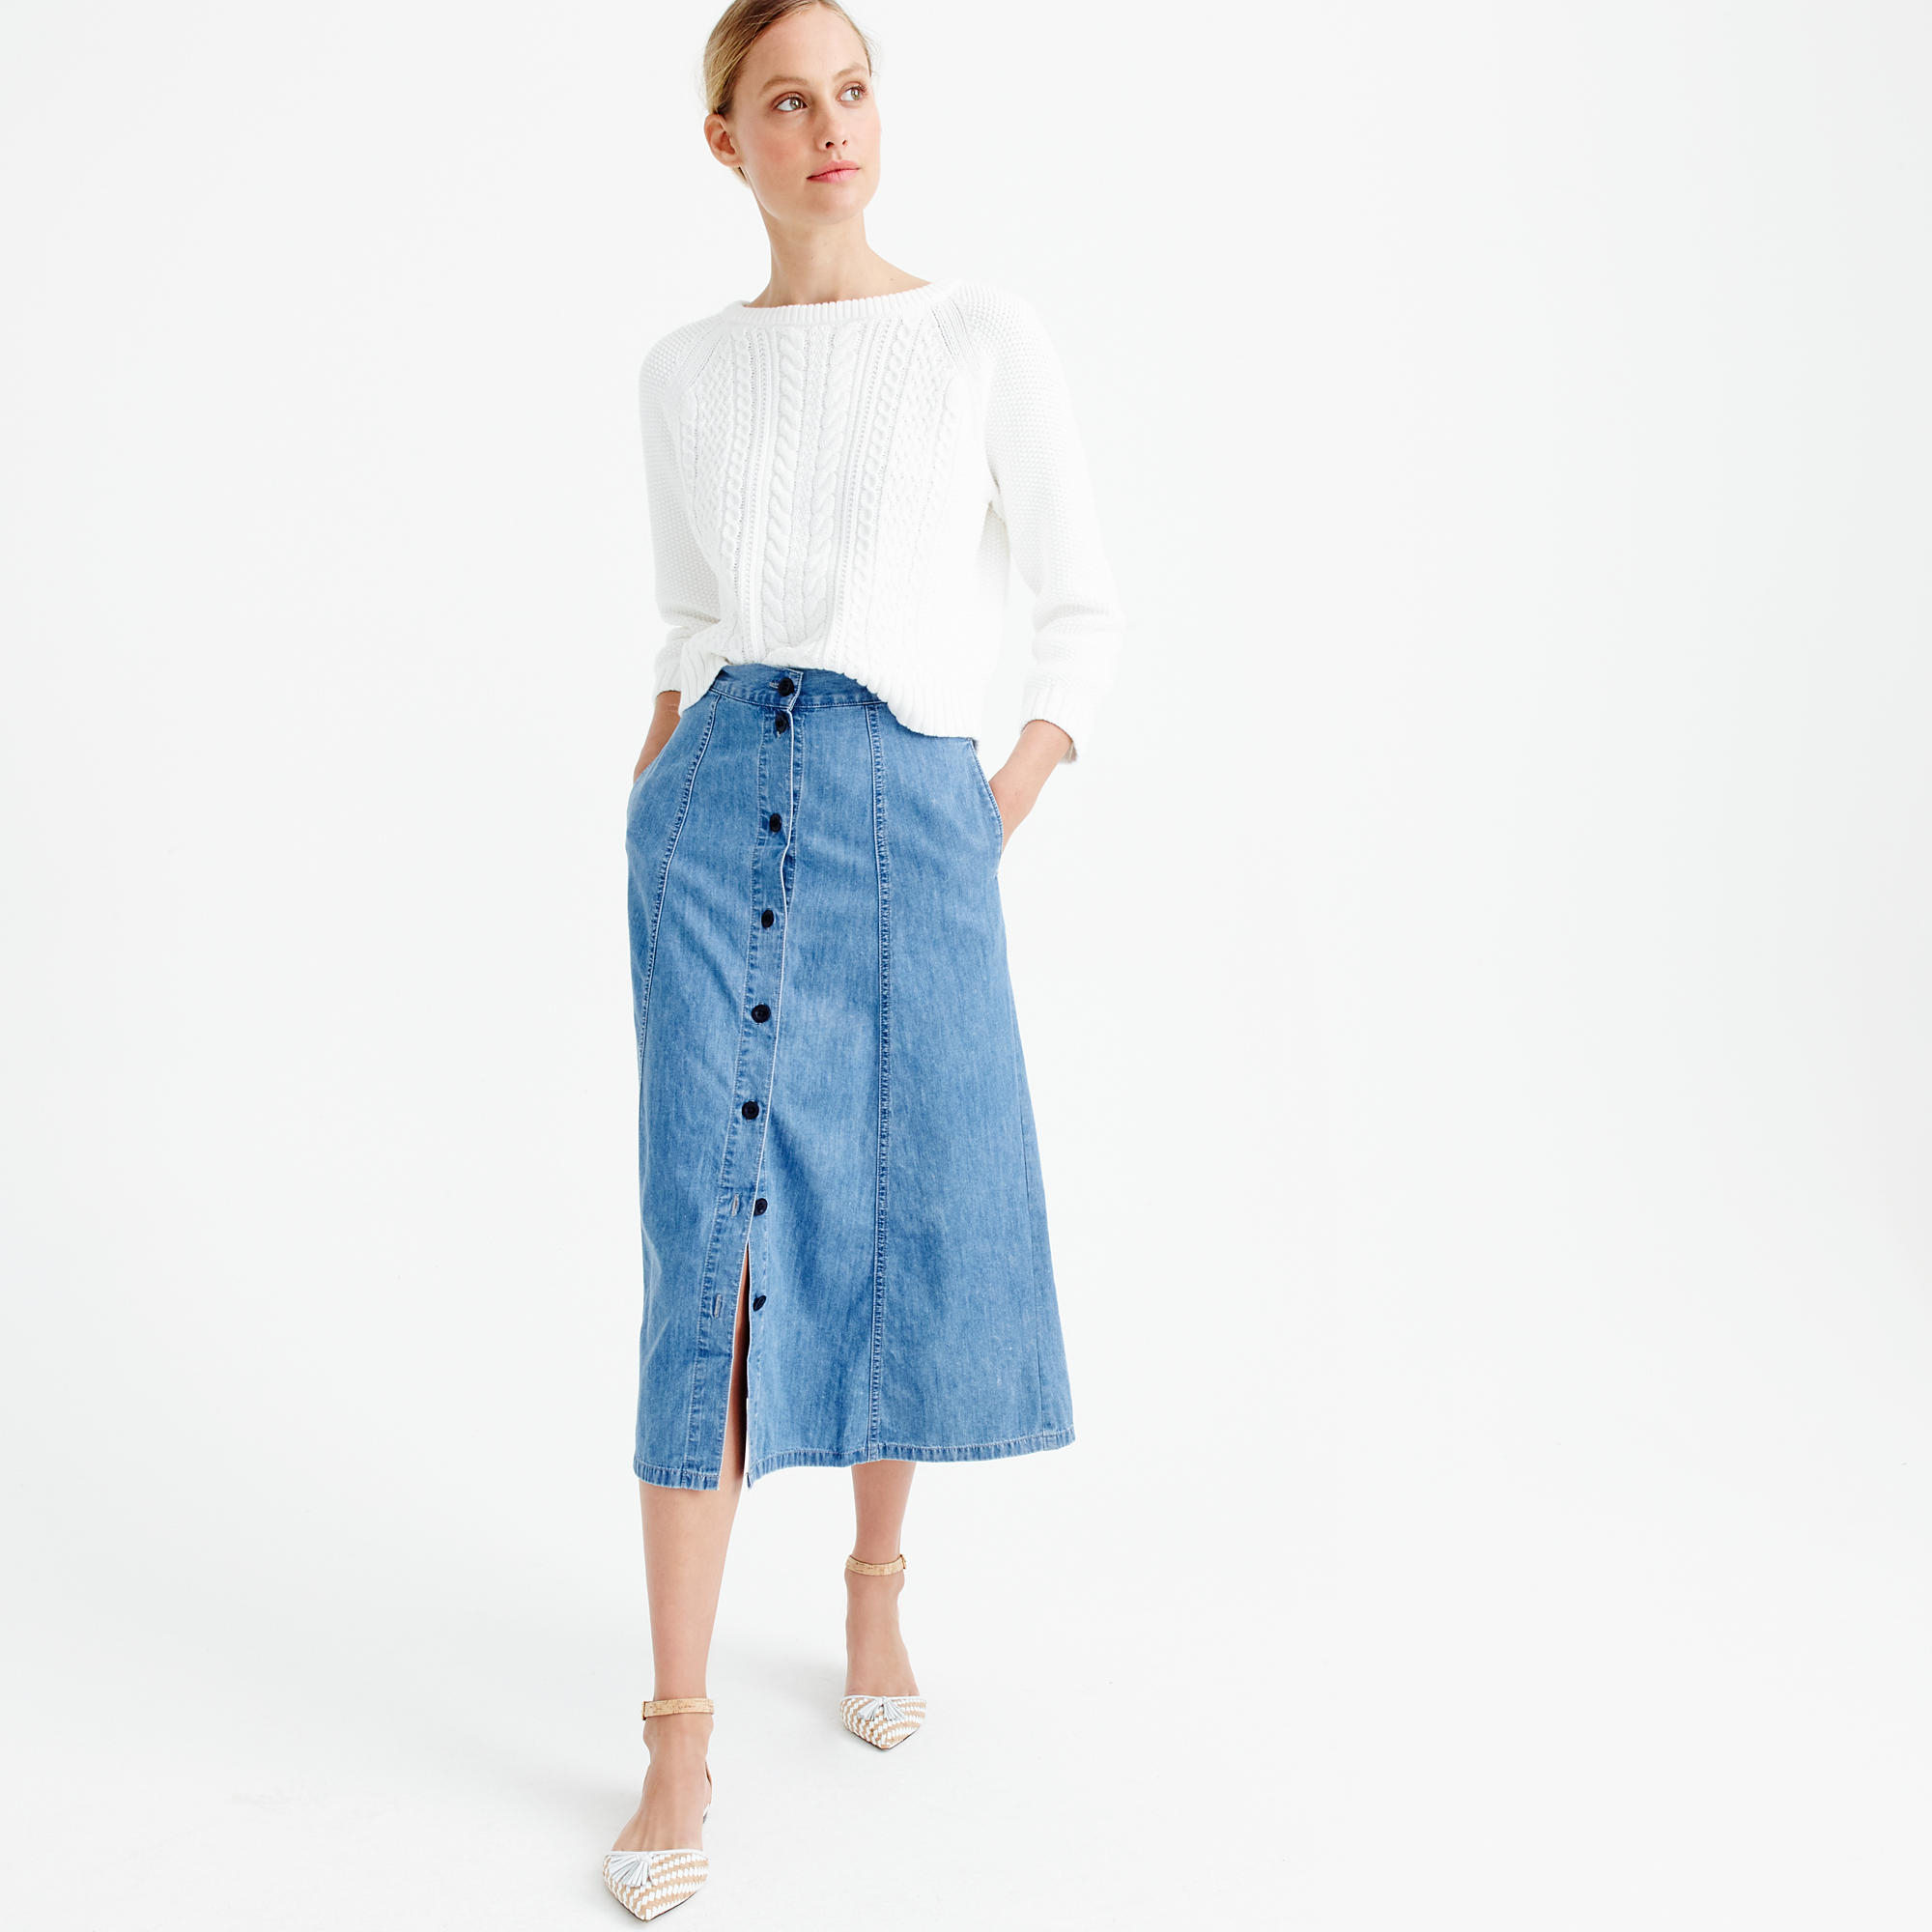 J.crew Button-front Midi Skirt in Blue